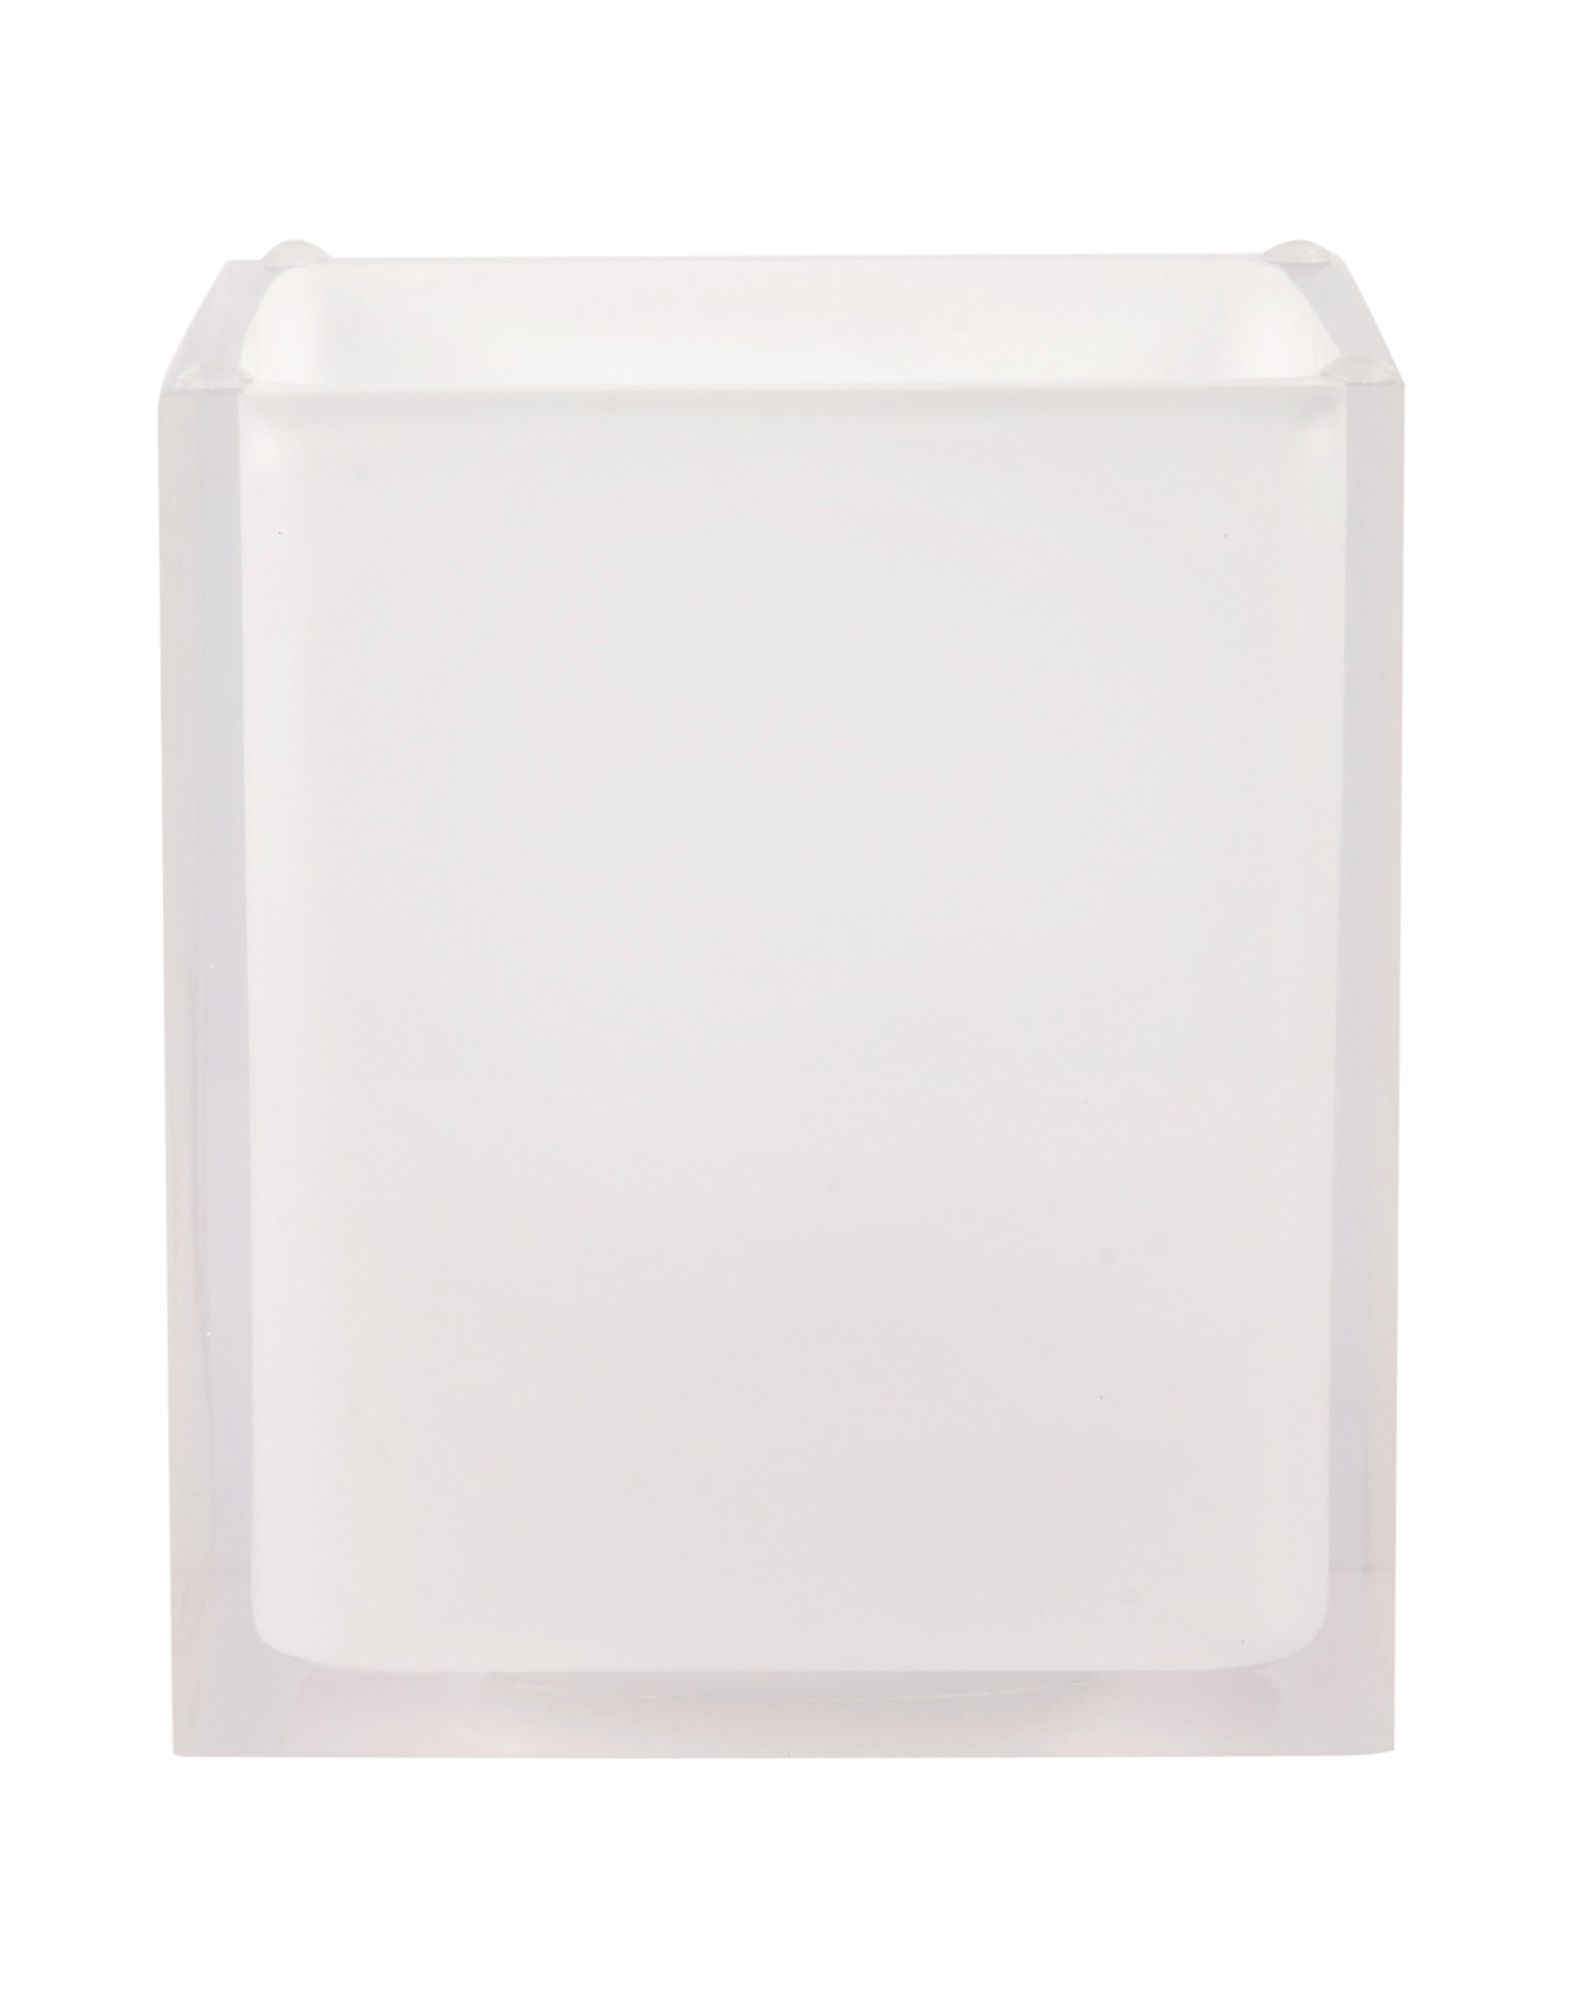 JONATHAN ADLER Bathroom accessories  Item 58030179 1